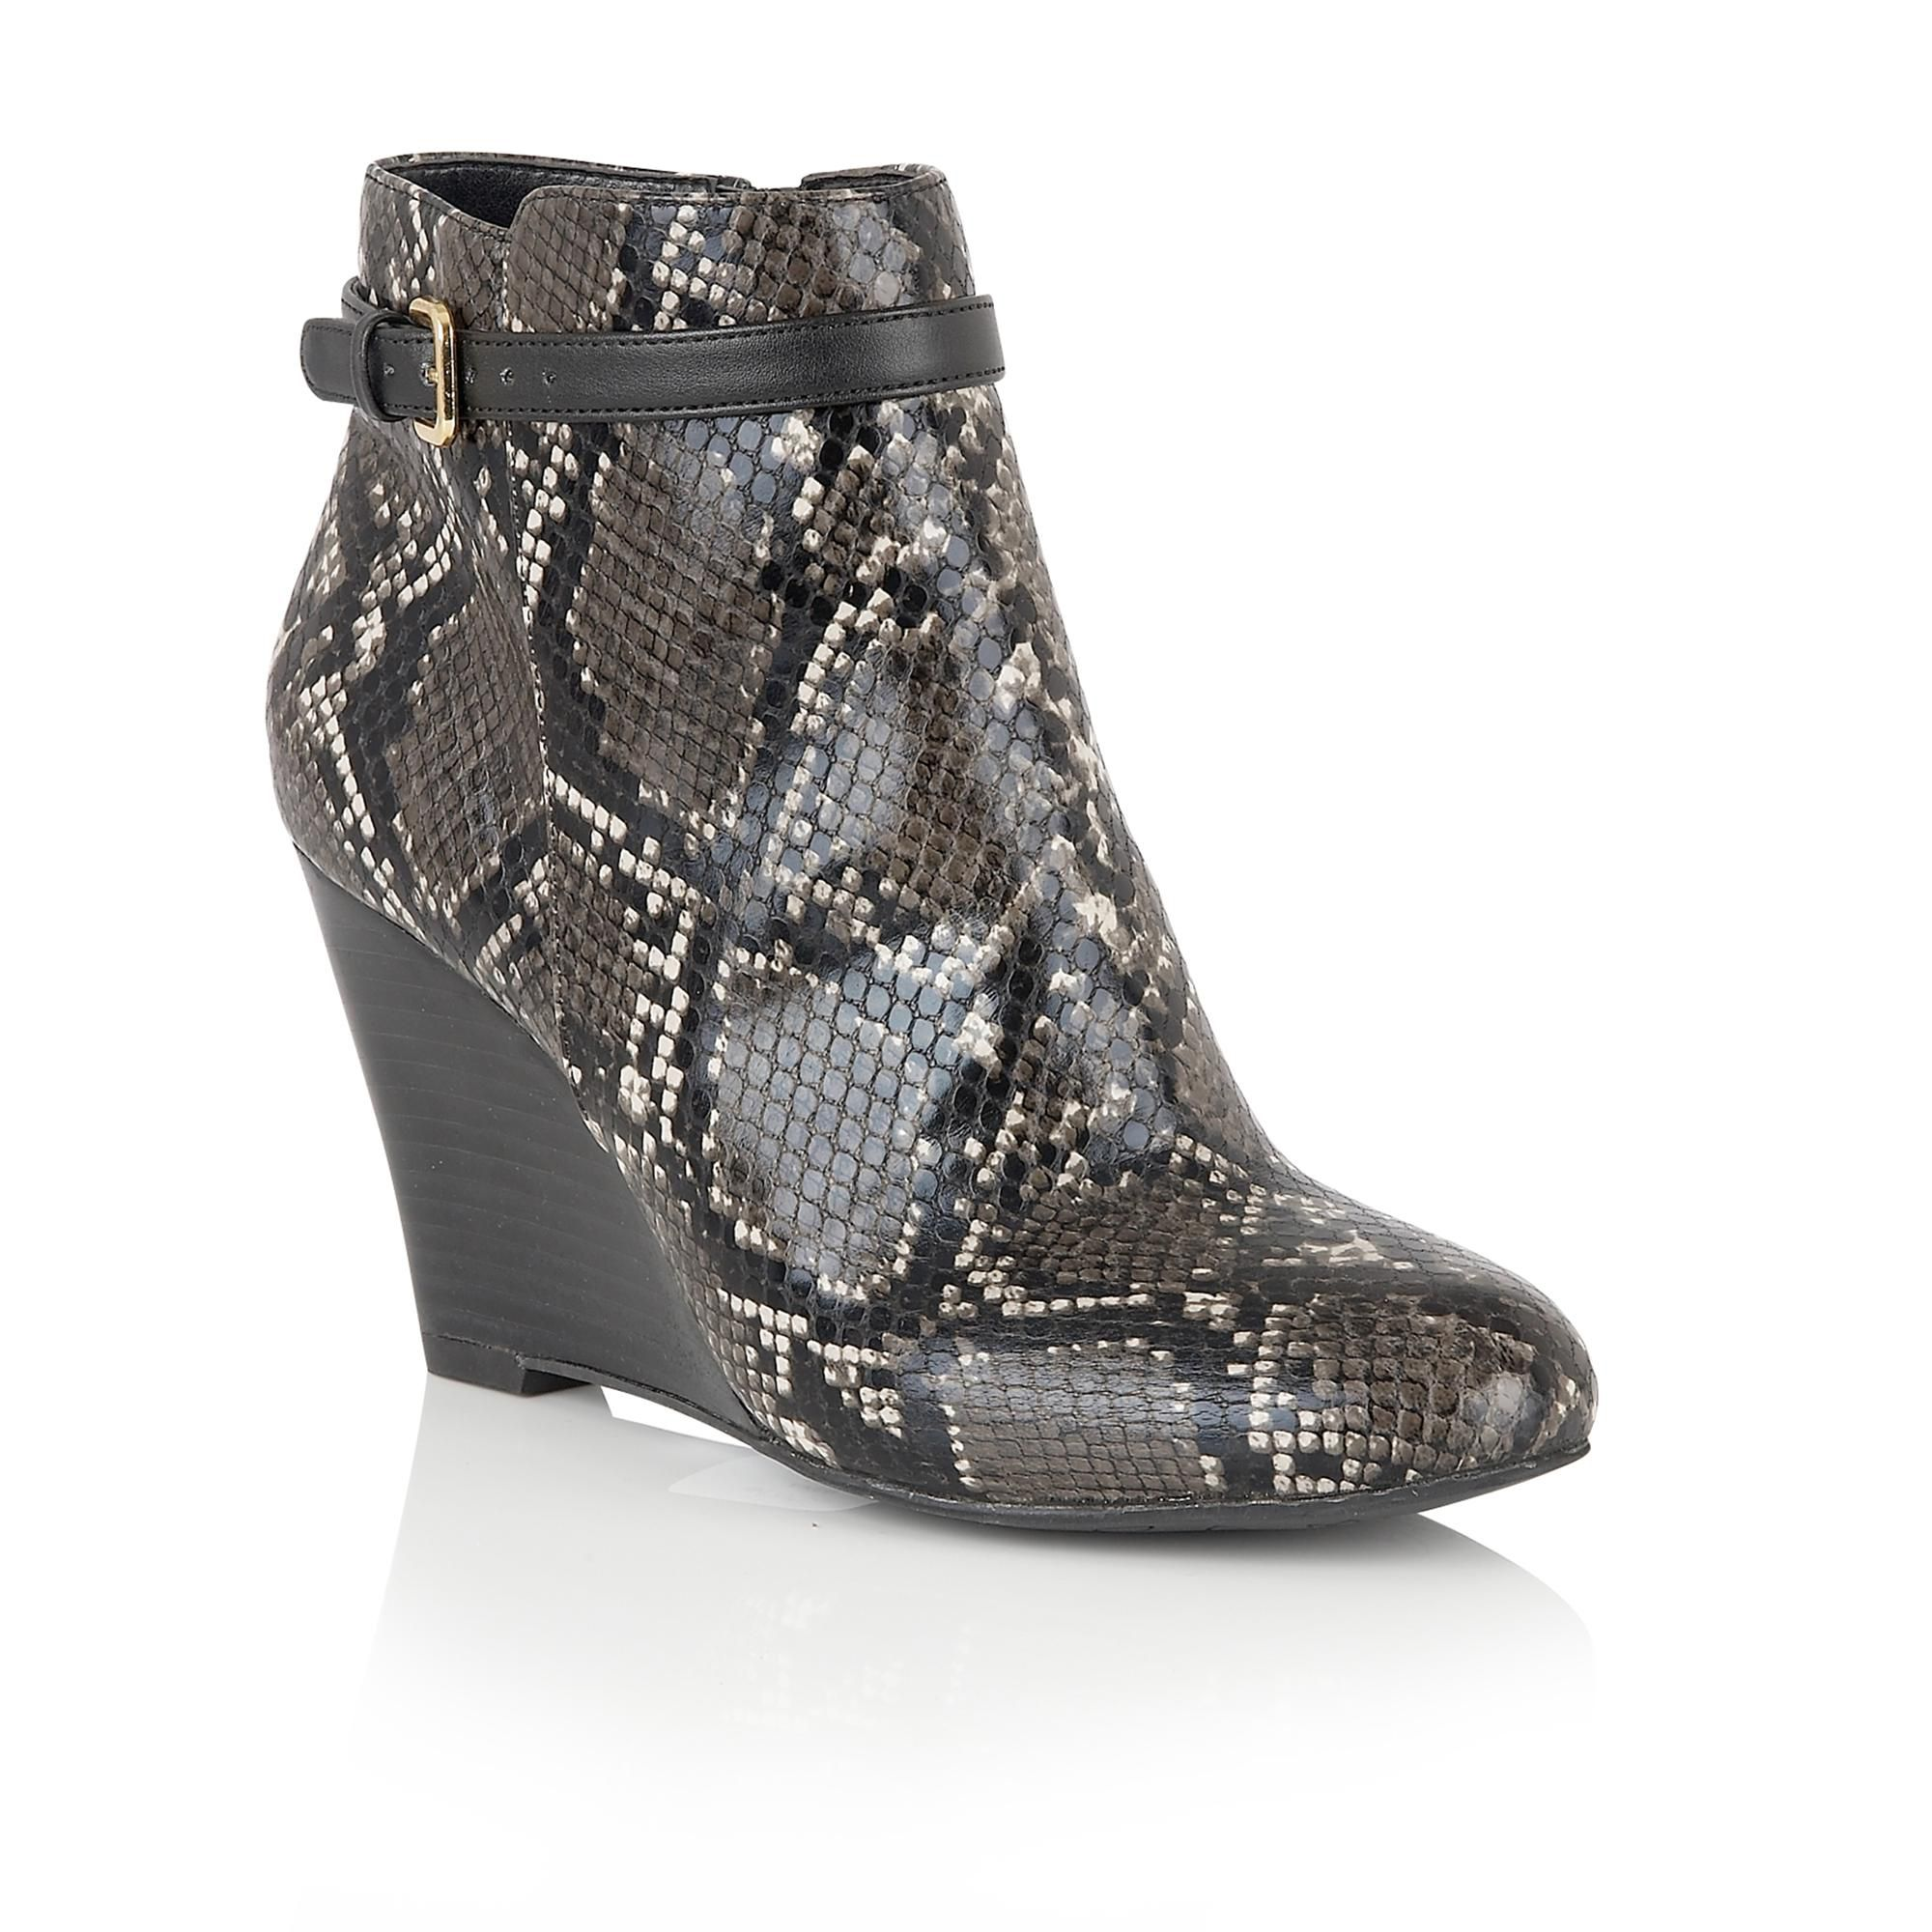 Lotus Aiken animal print shoe boots Black